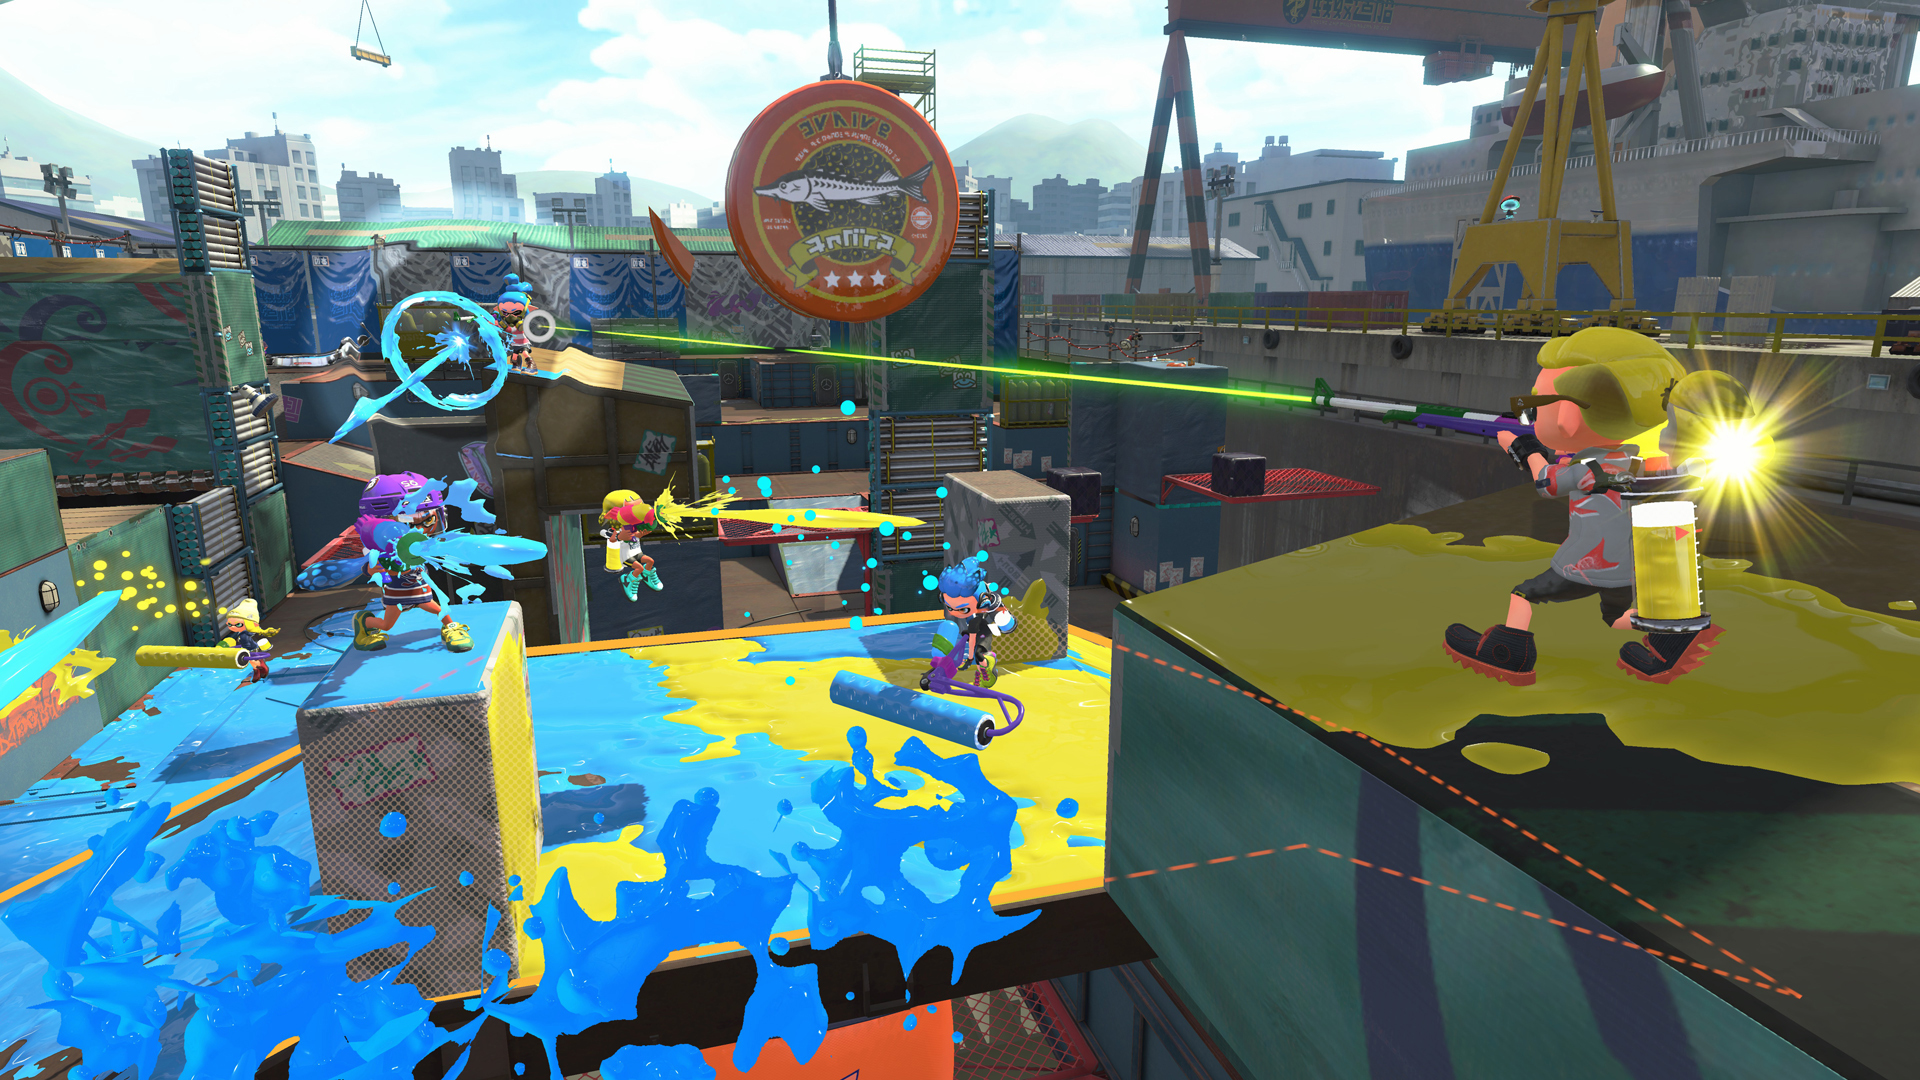 splatoon 2 1 3 0 update to release today to introduce many balance